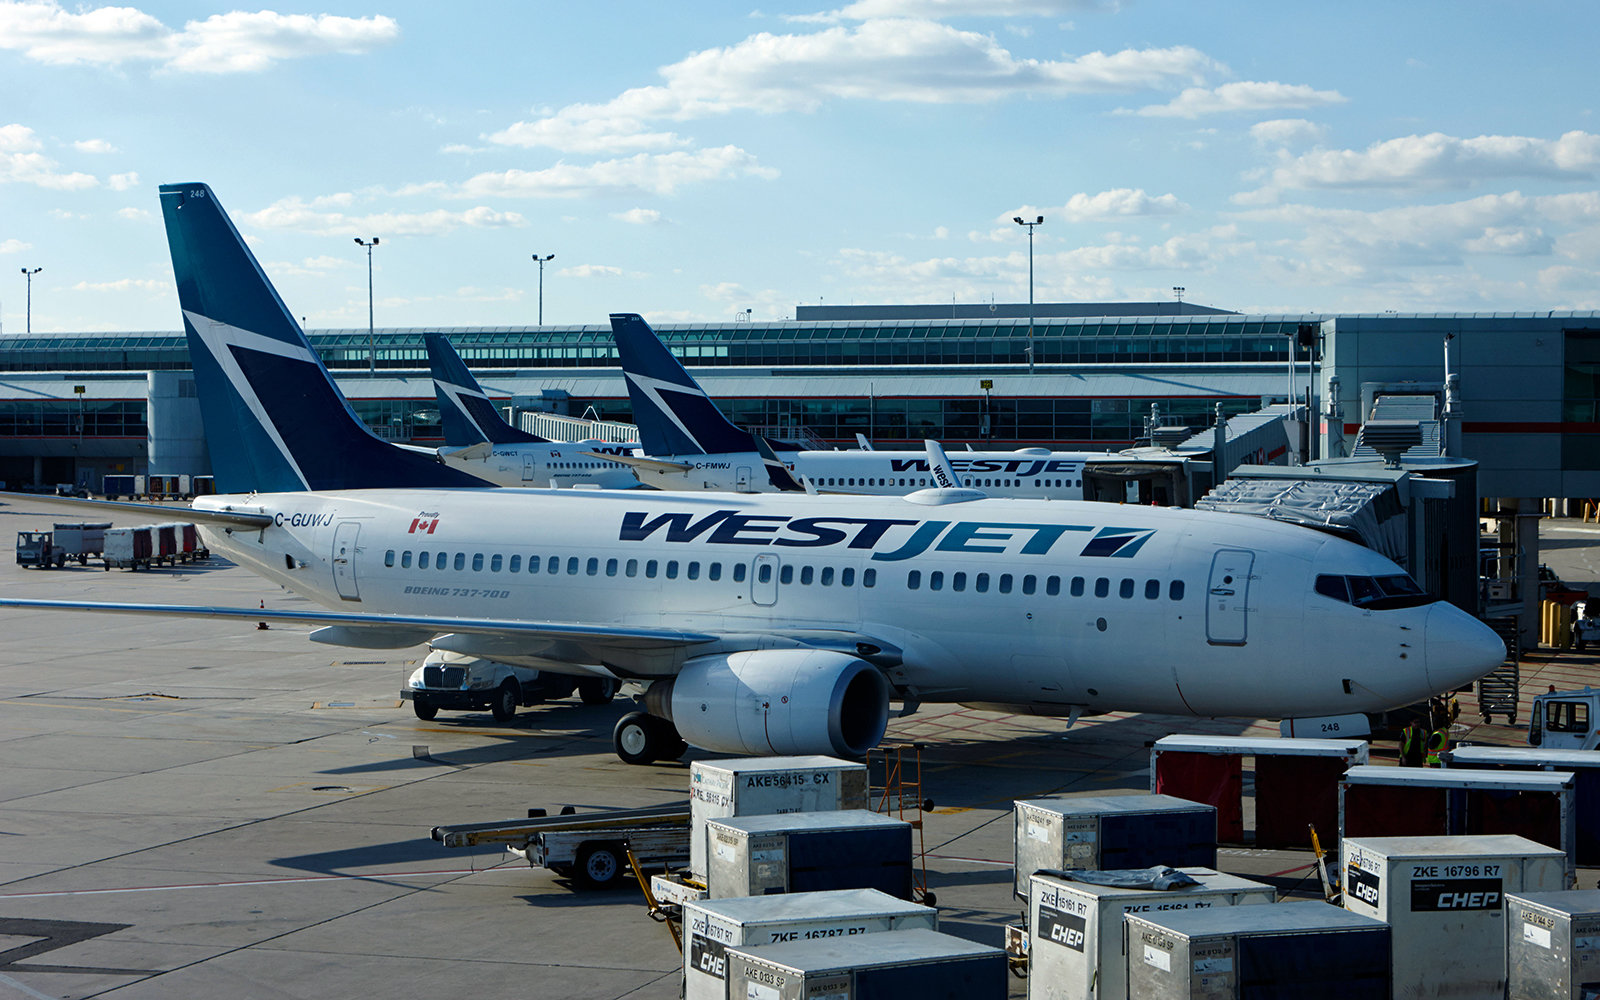 westjet aircraft at terminal 3 toronto pearson international airport Canada